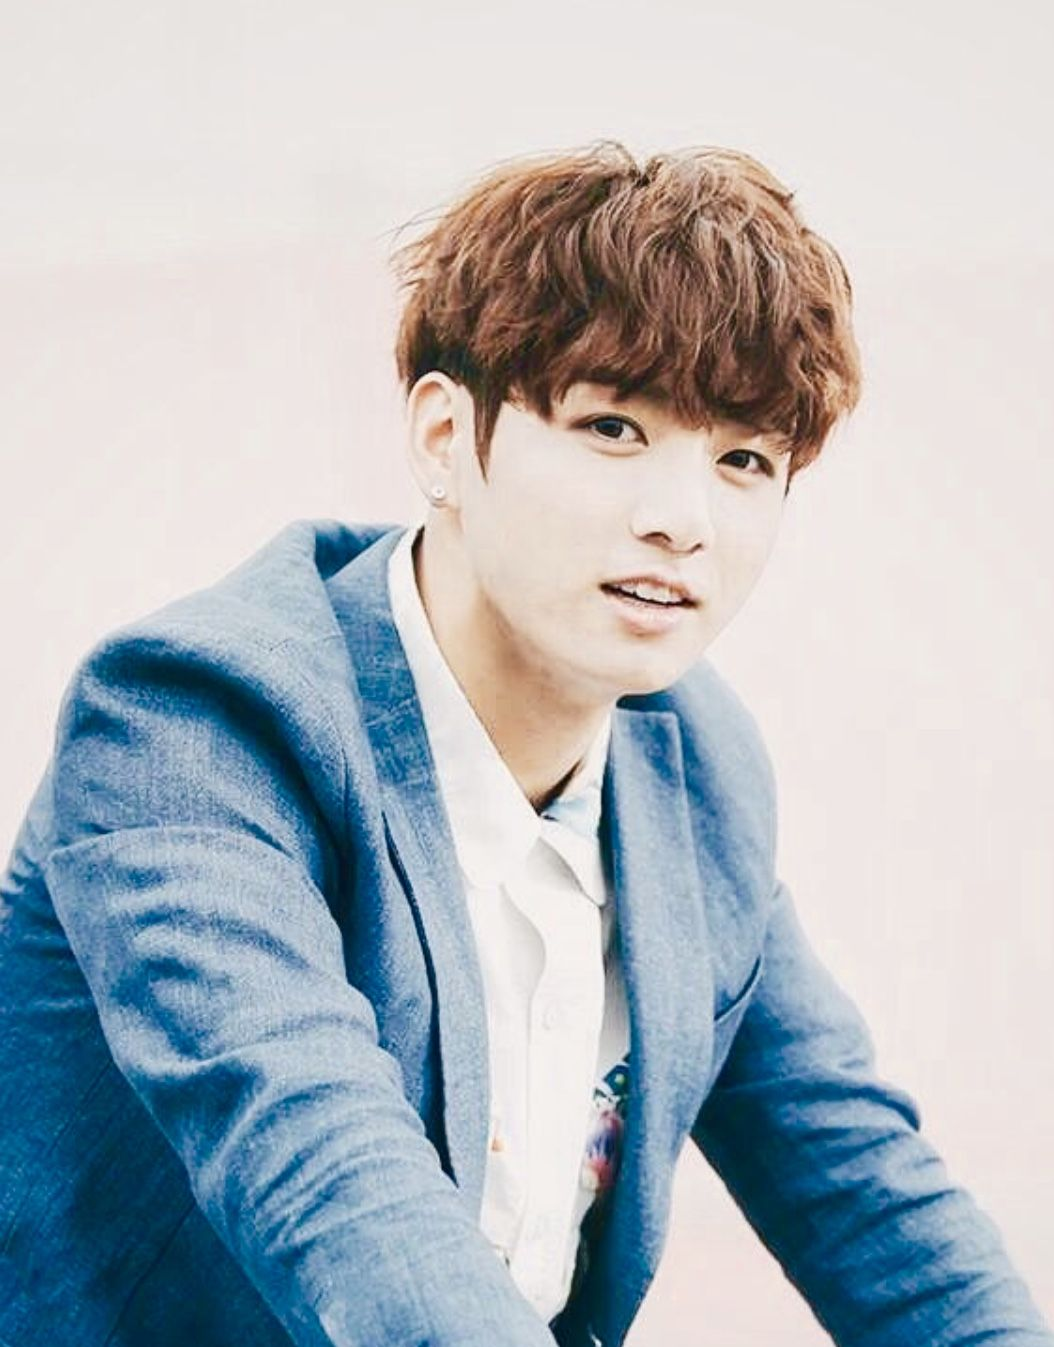 Happy Birthday Jungkook. I'm so proud of the wonderful person you've become. I love you so much. #happybirthdayjungkook